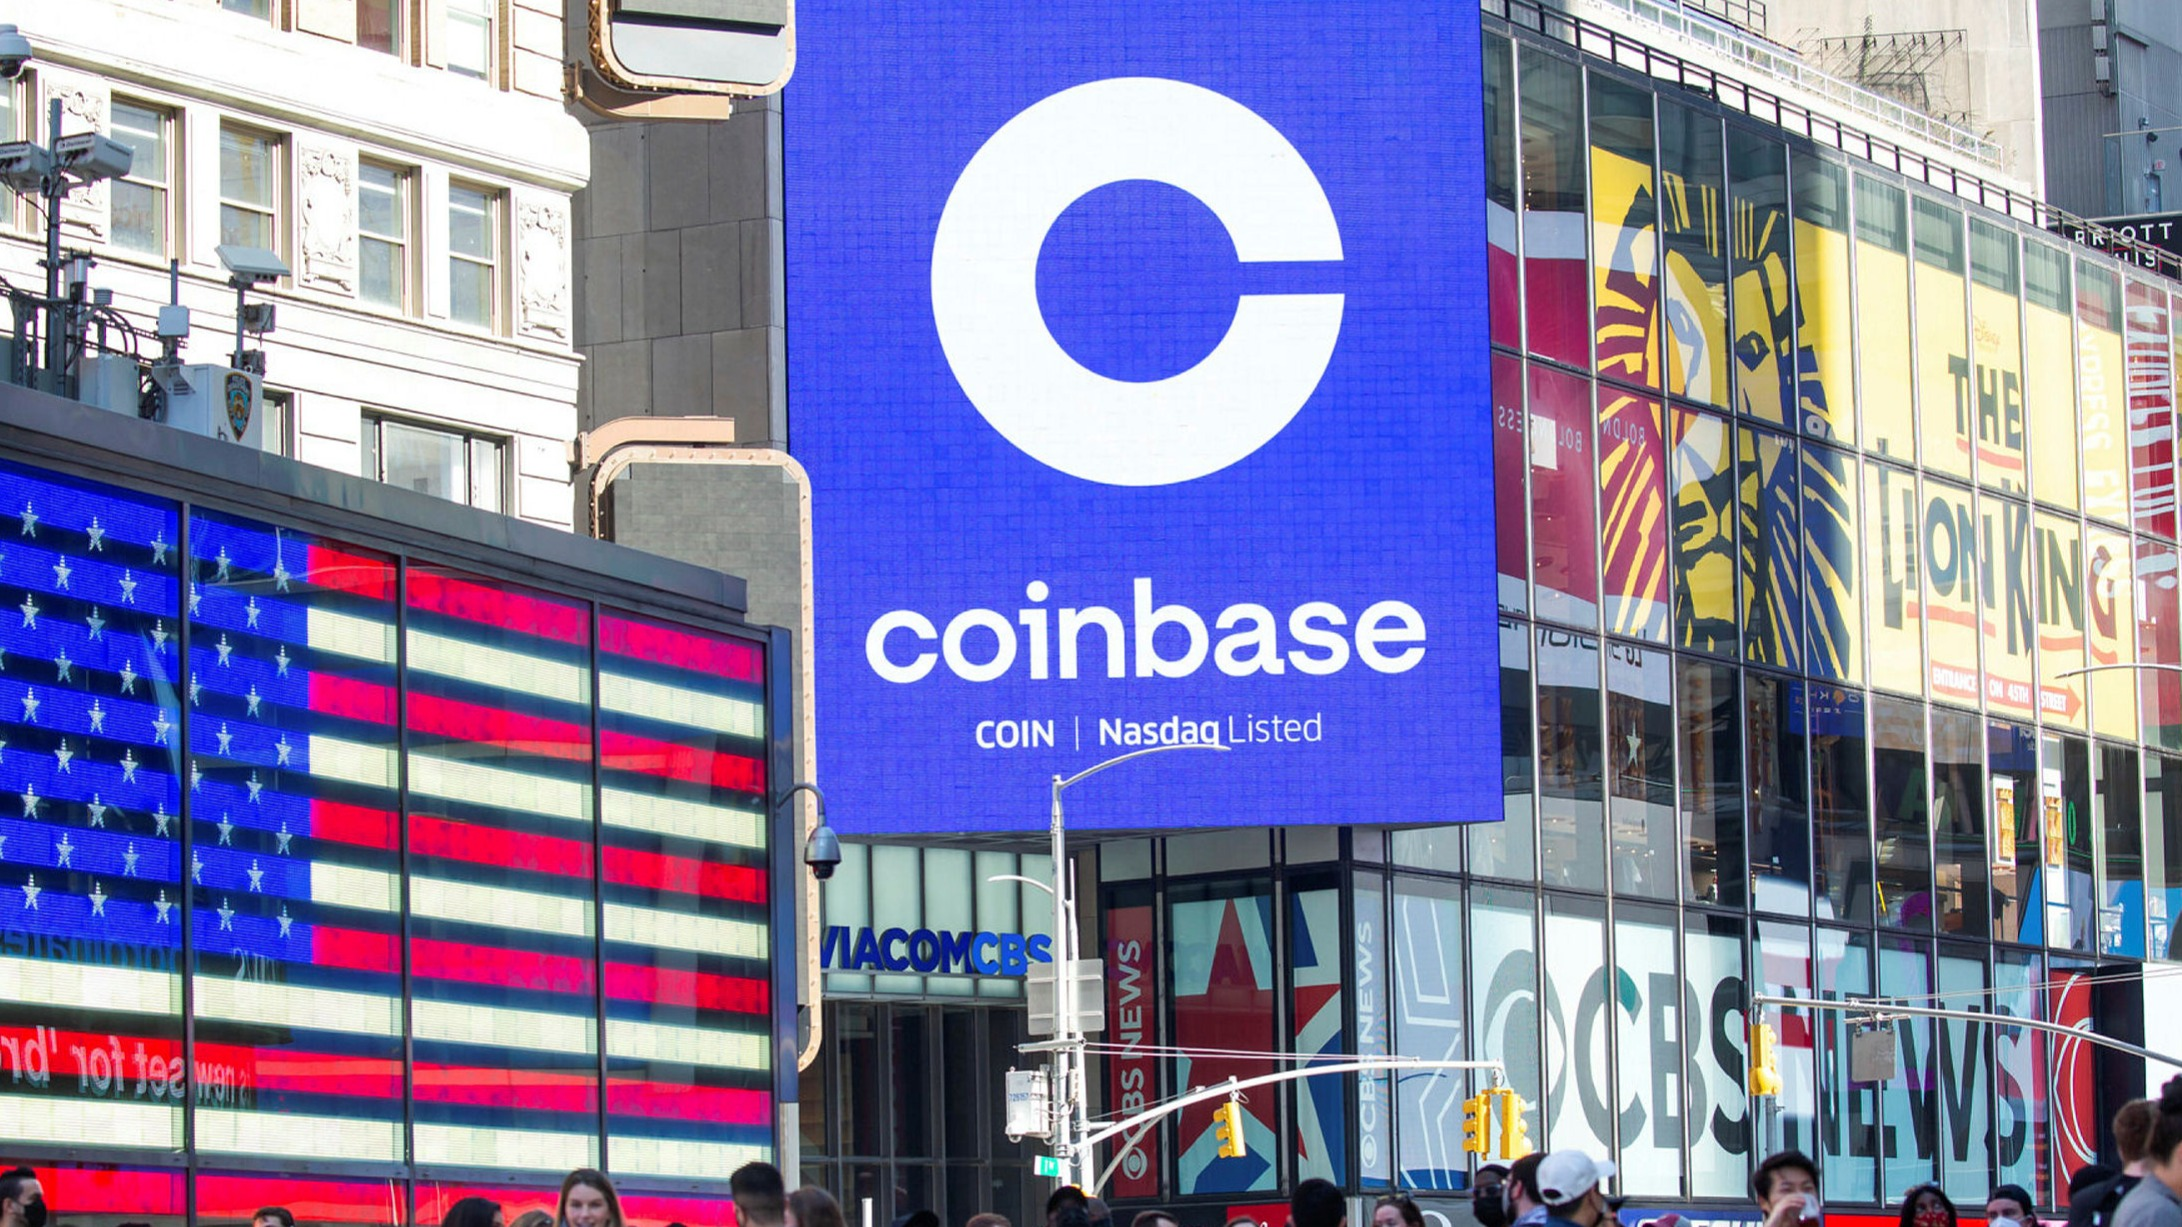 Coinbase Signs 401(k) Bitcoin Investment Deal